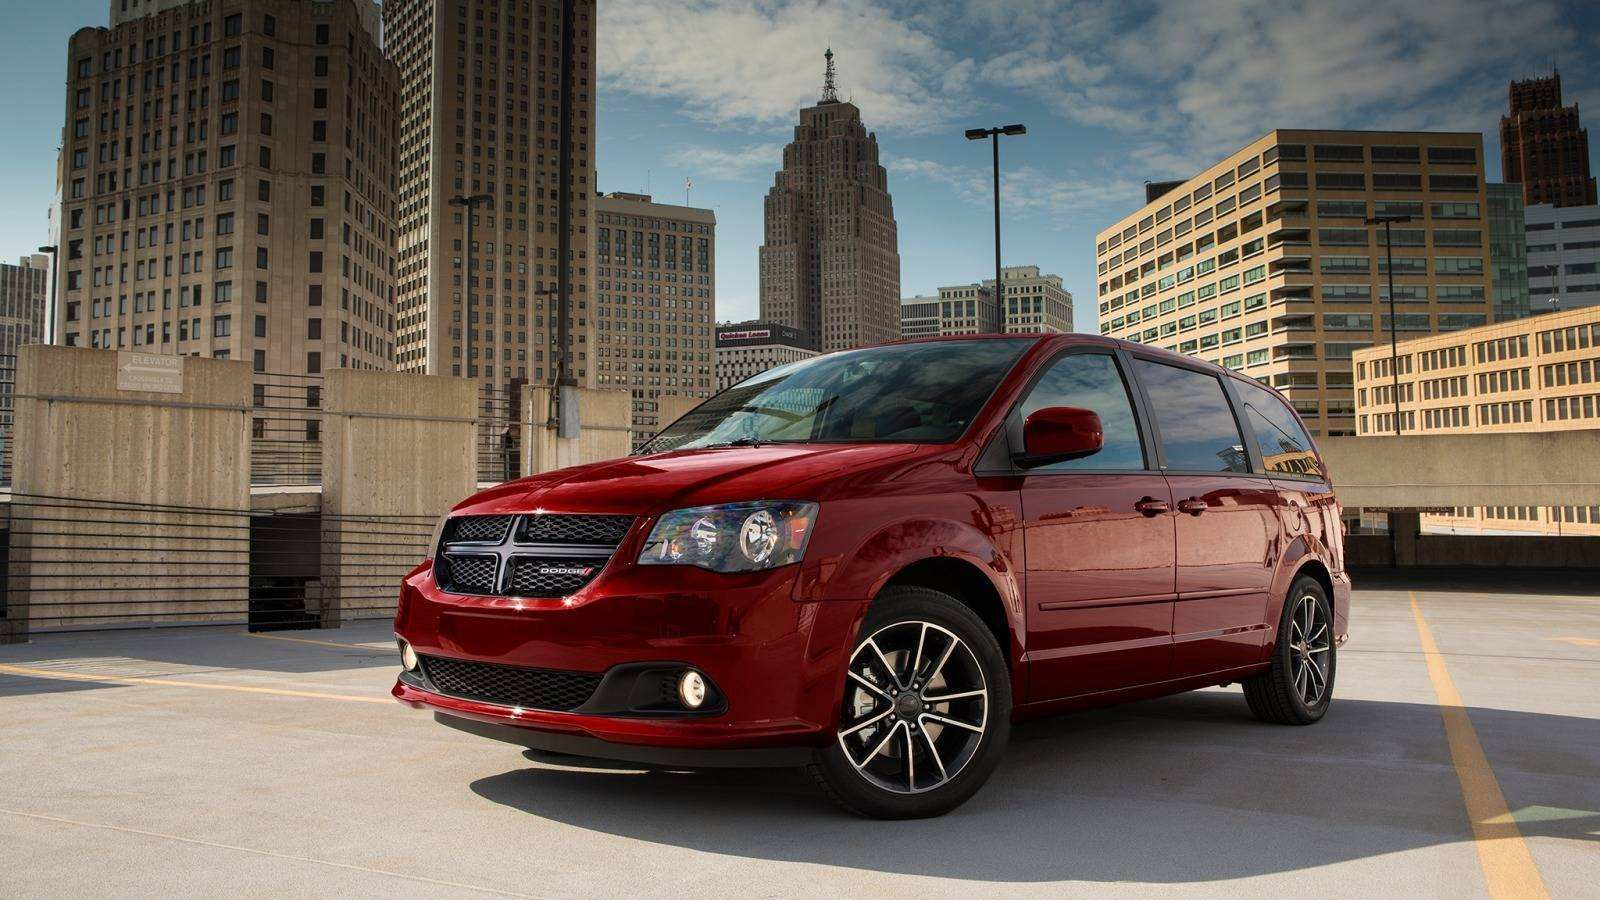 28 Best Review 2019 Dodge Grand Caravan Specs And Review Performance and New Engine by 2019 Dodge Grand Caravan Specs And Review